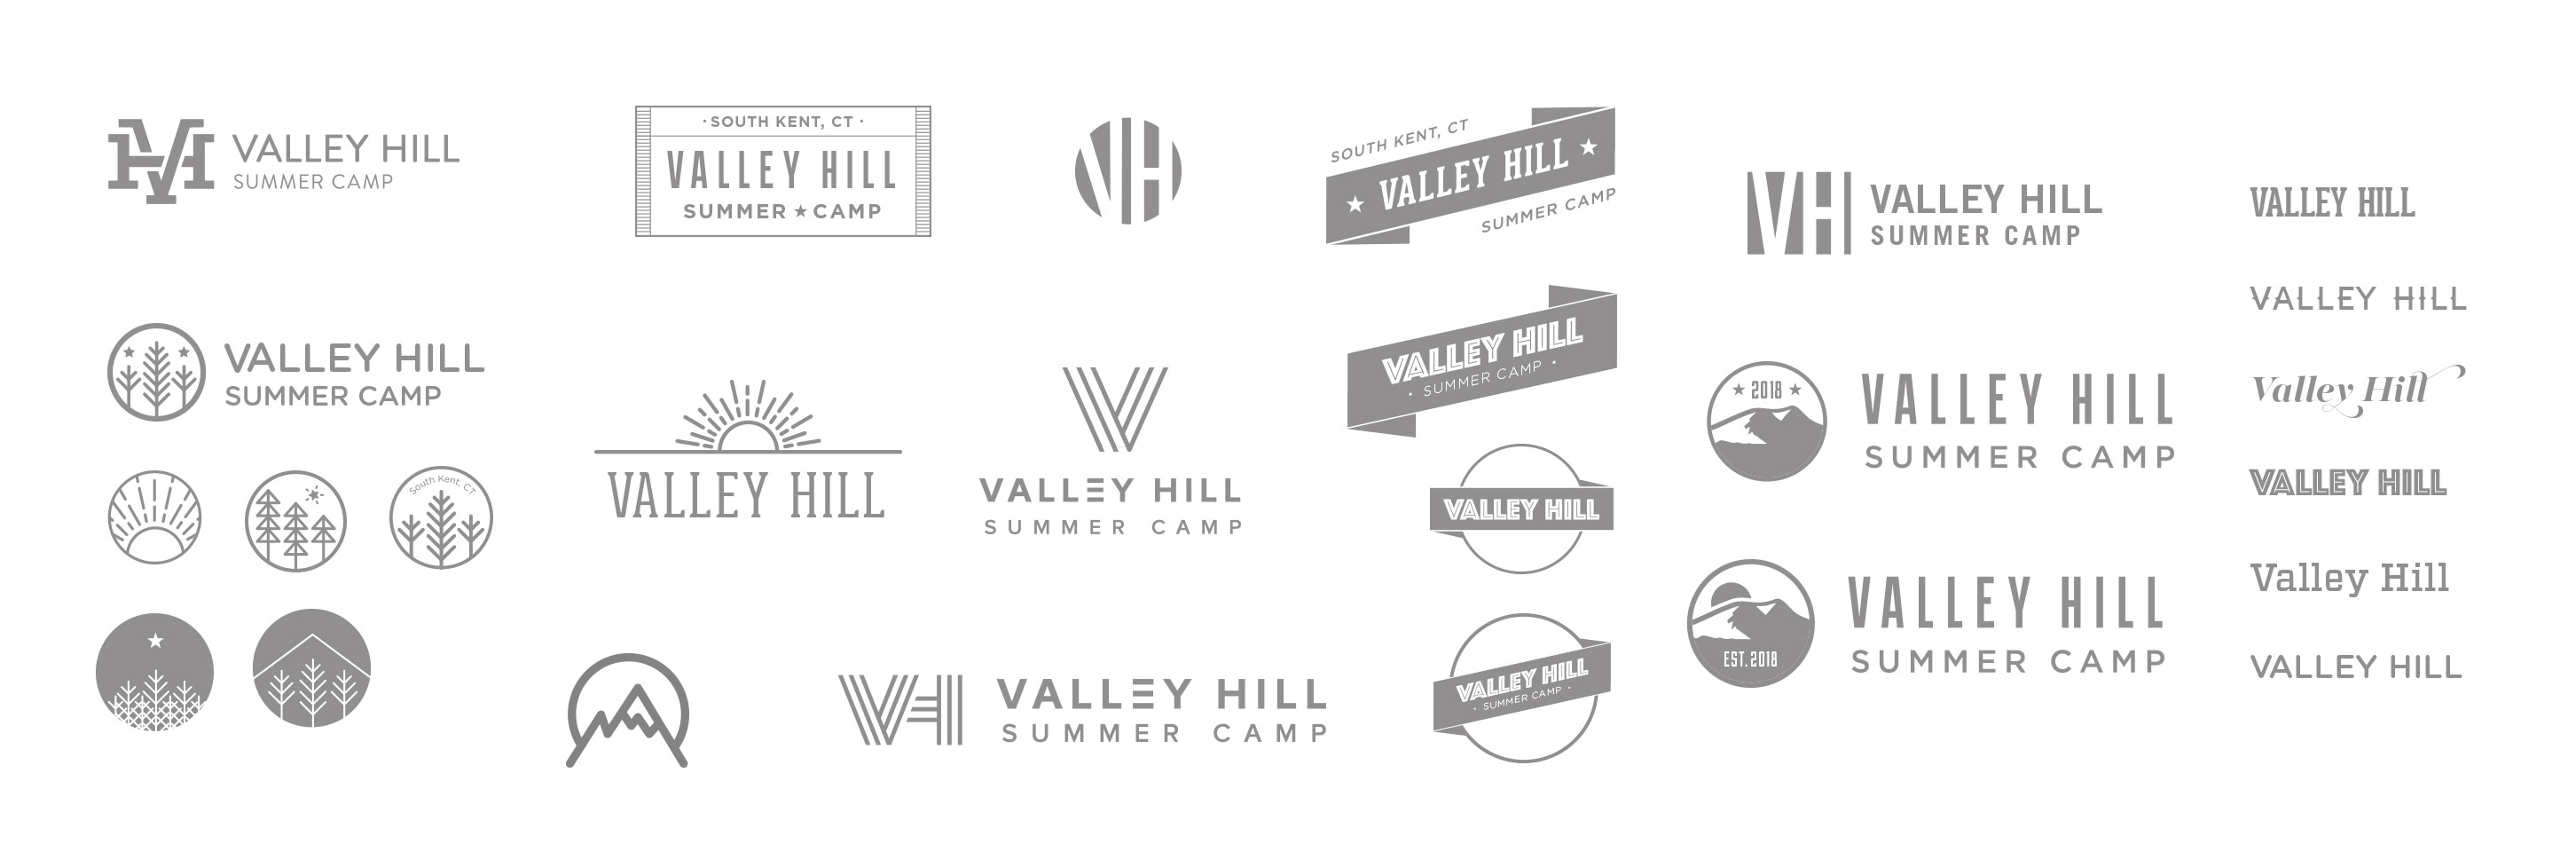 Valley Hill Summer Camp logo sketches